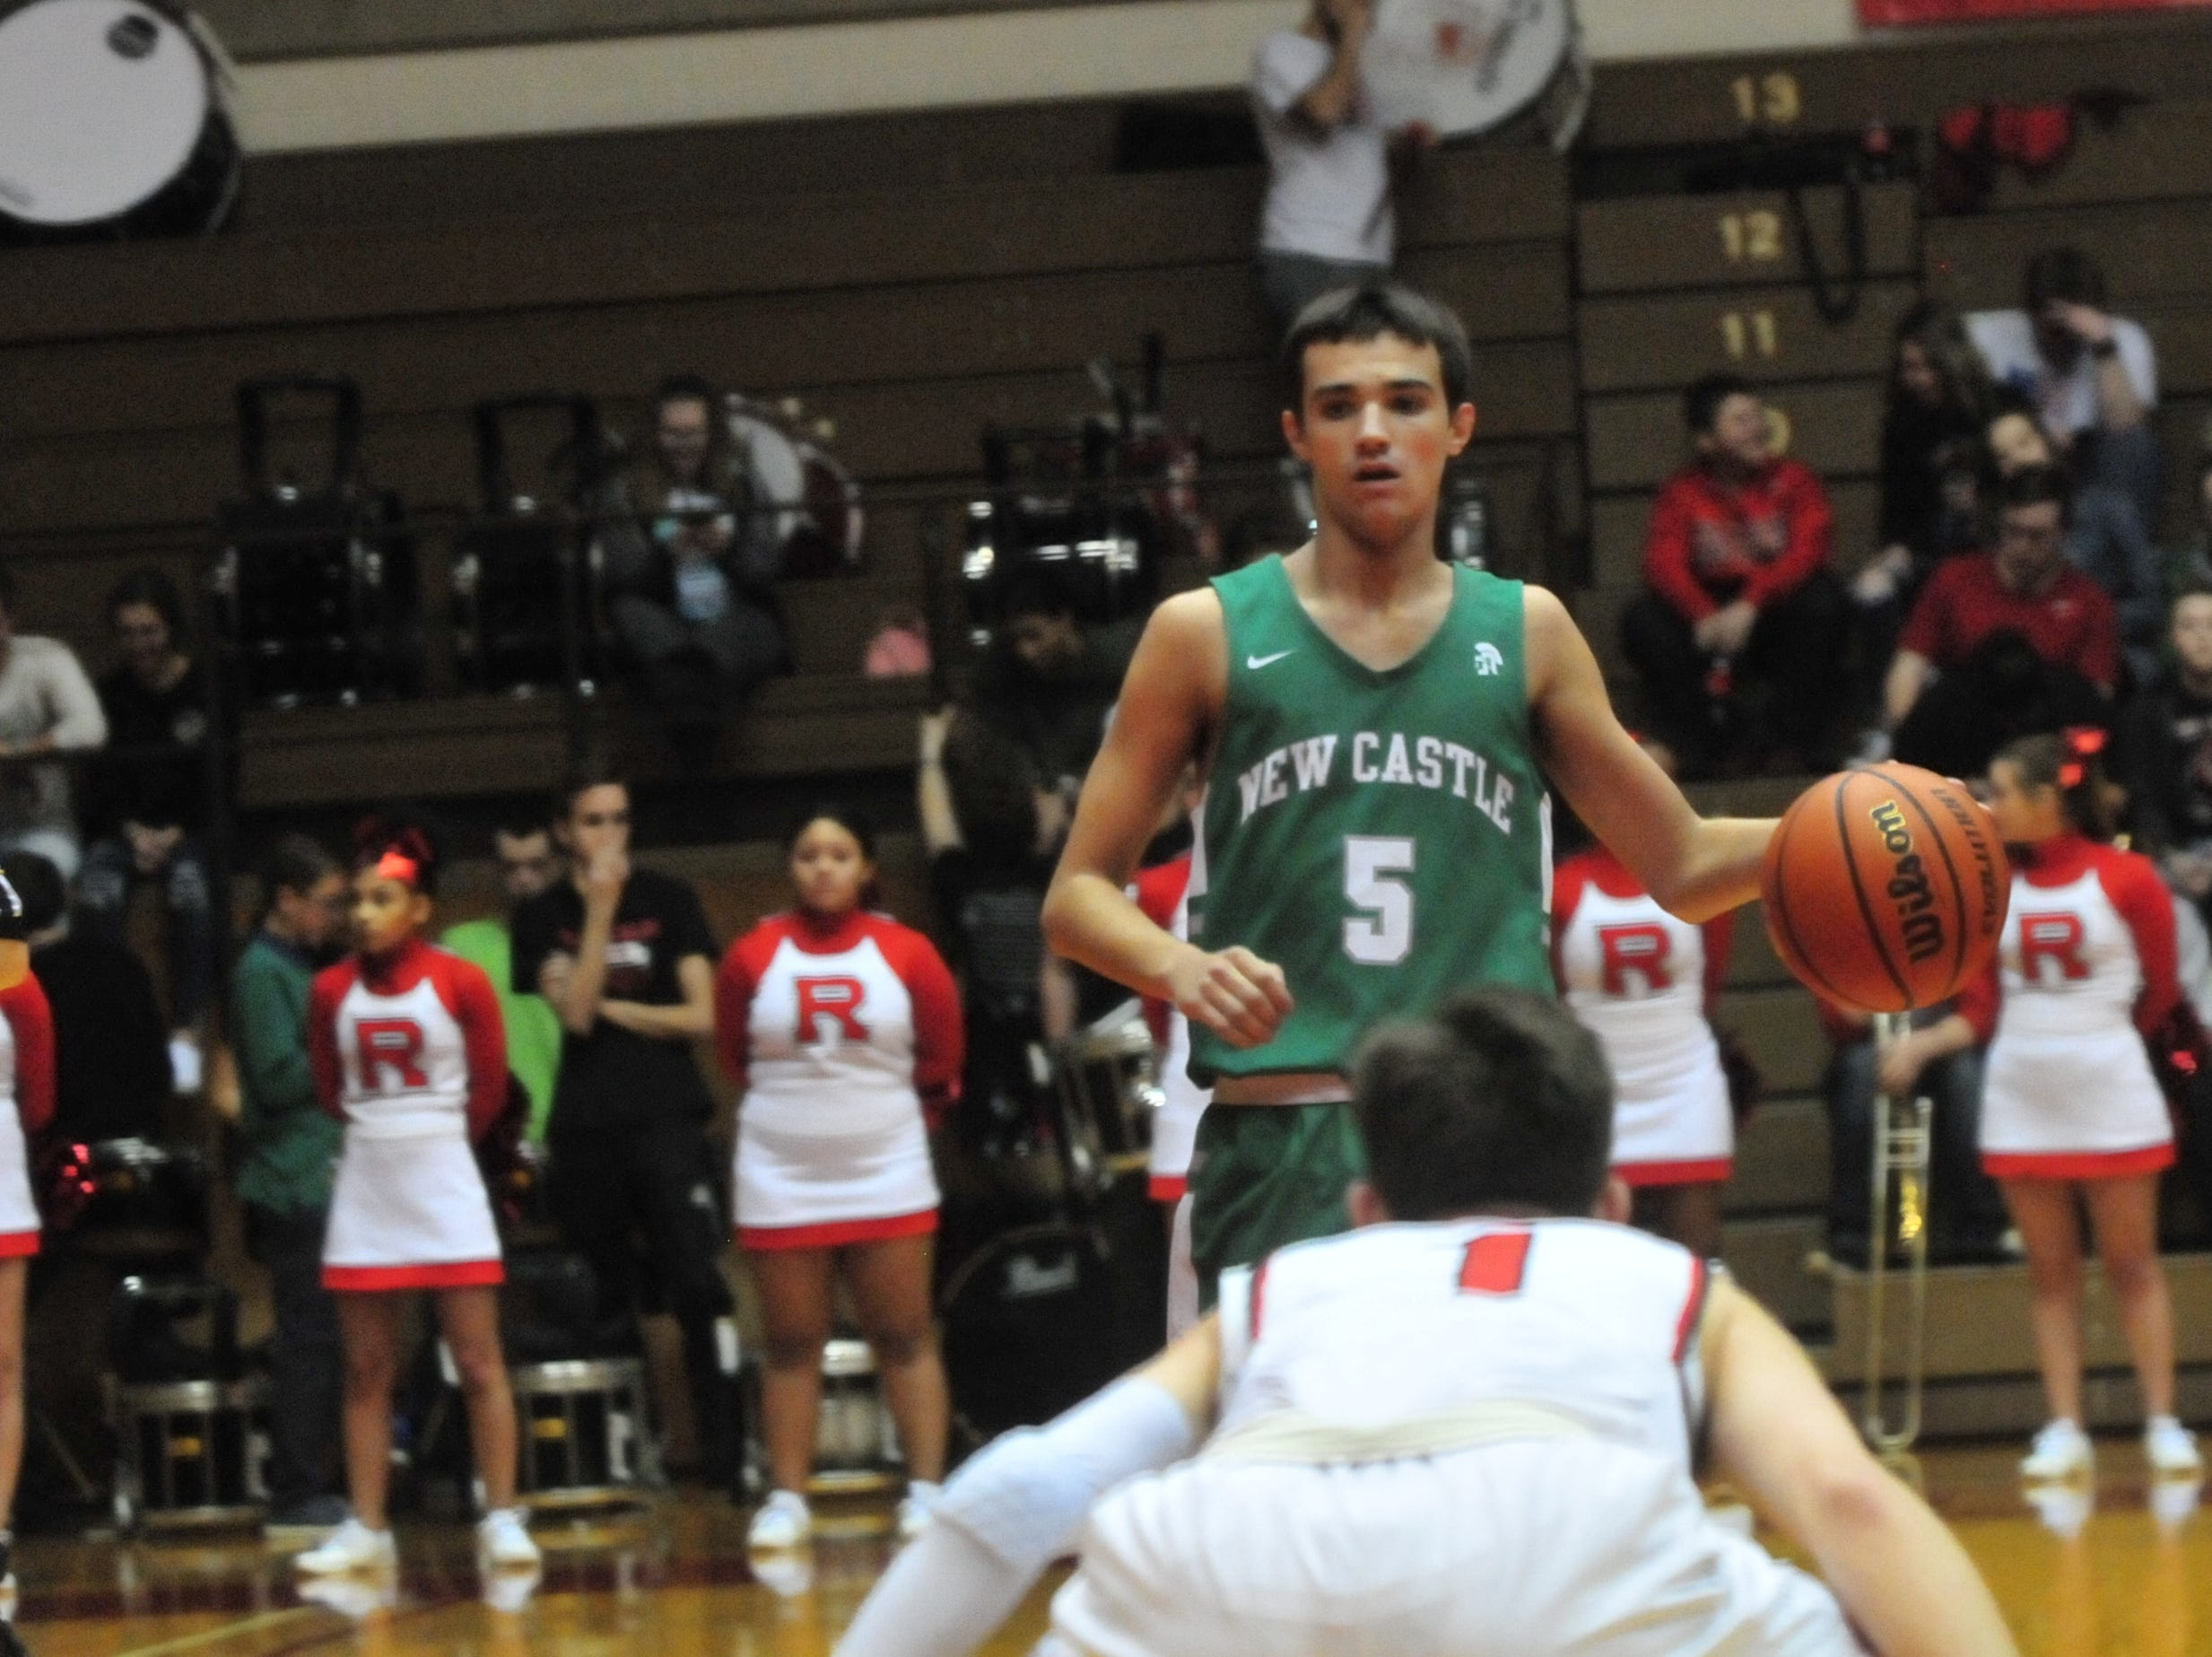 New Castle senior Blake Burris (5) moves the ball during a boys basketball game against Richmond at Tiernan Center Friday, Jan. 4, 2019.